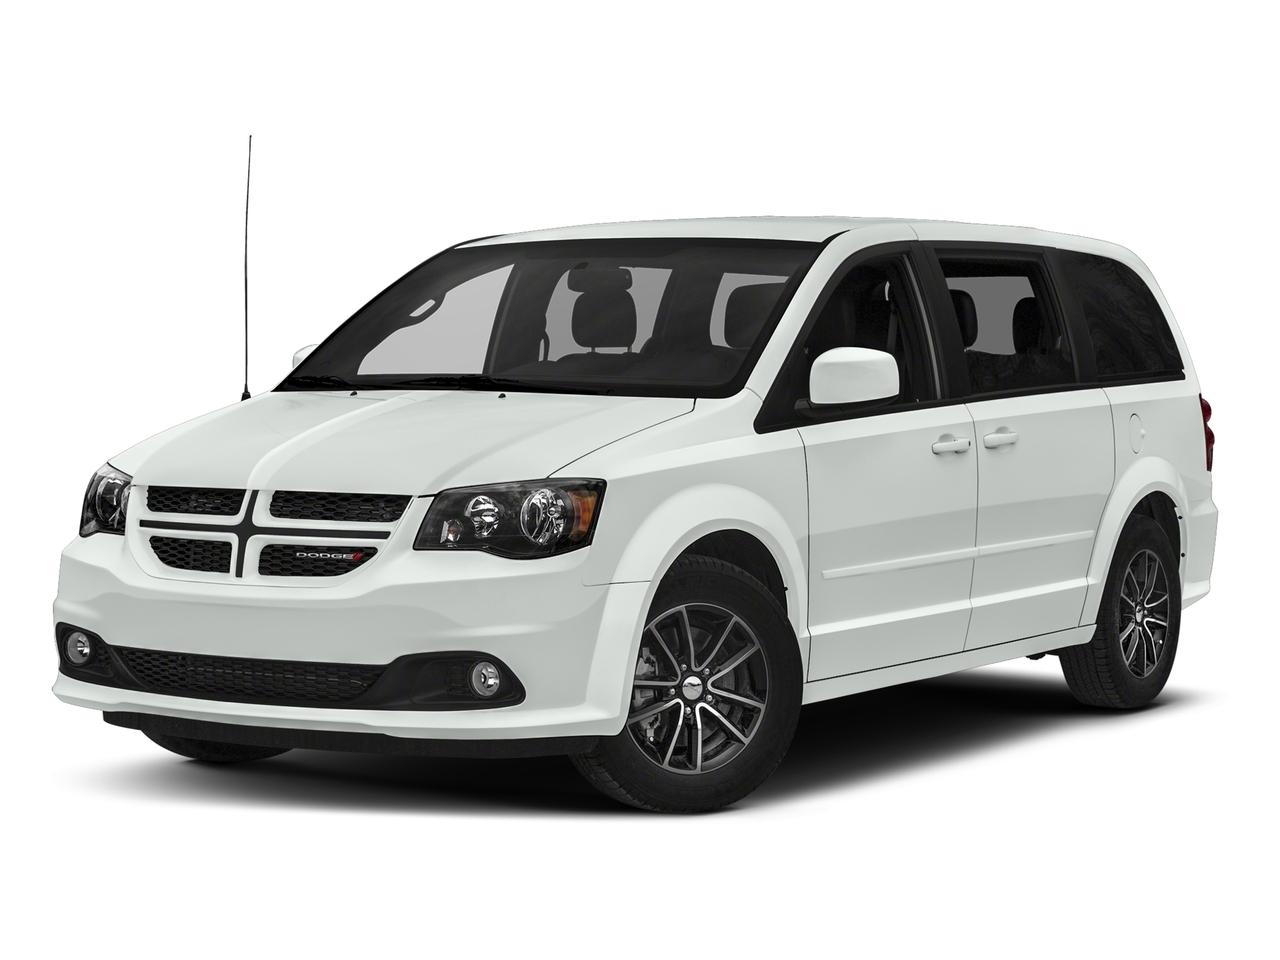 2018 Dodge Grand Caravan Vehicle Photo in Portland, OR 97225